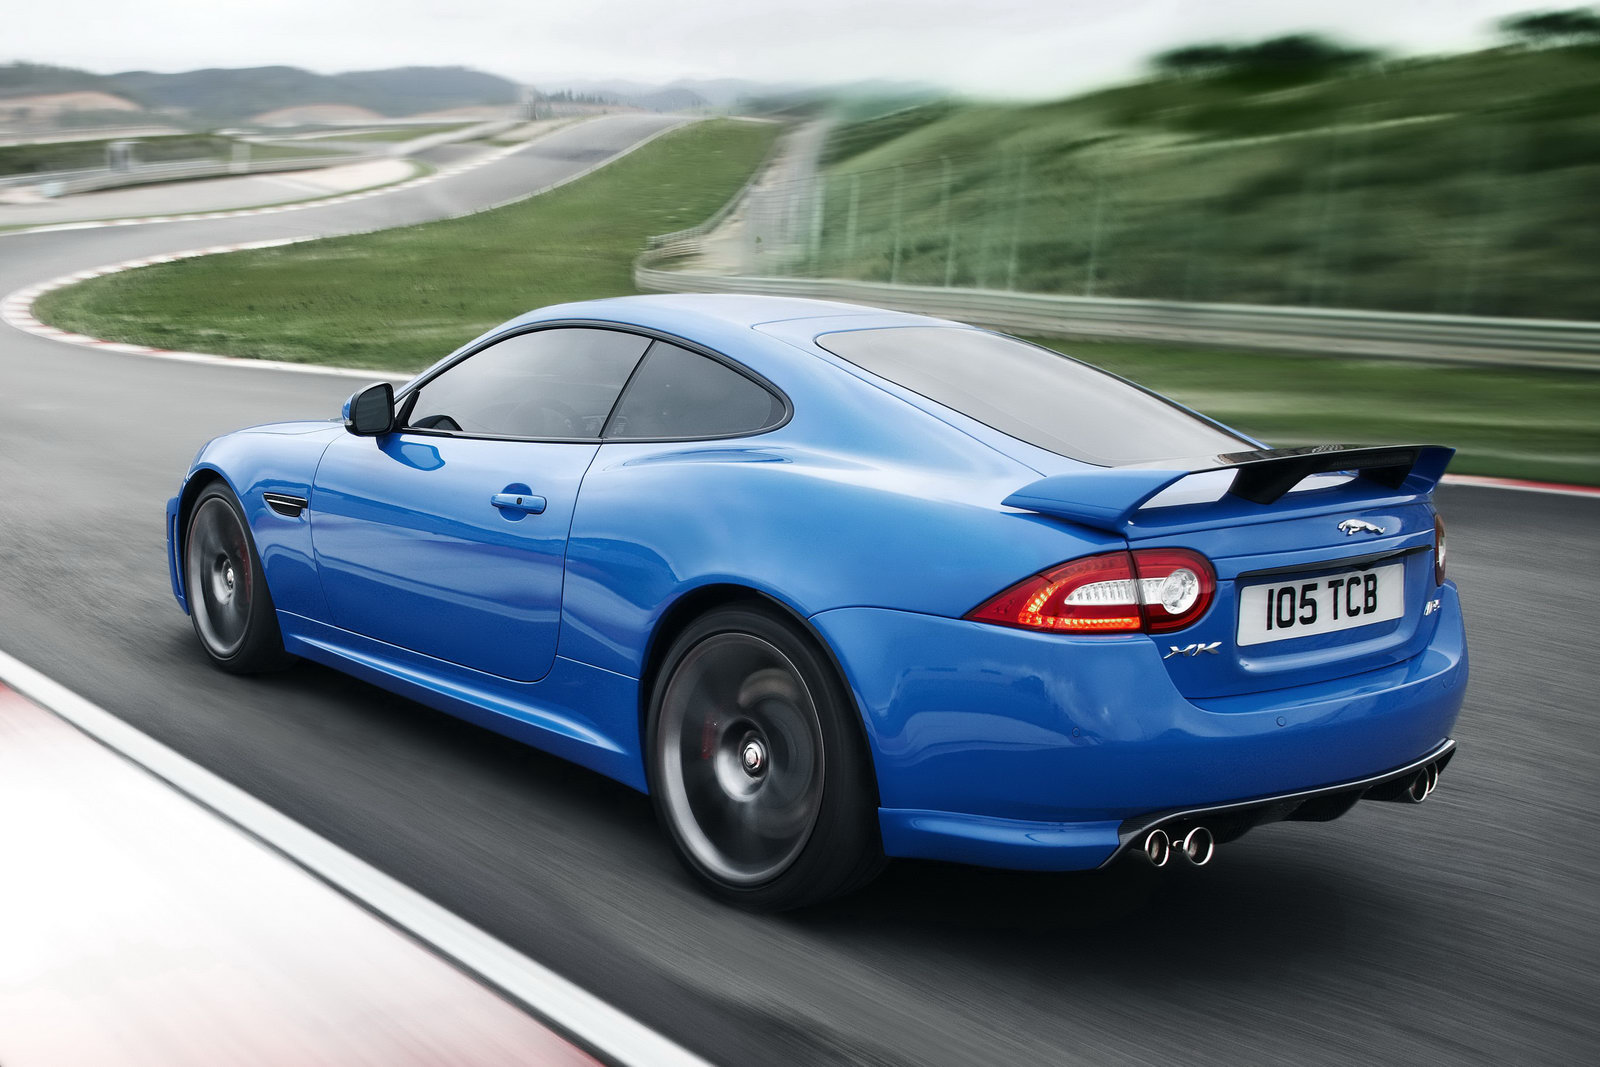 jaguar is visually fiber at s coupe splitter improve exclusivity xkrs htm speed appealing inc the dive blog luxury of xkr only for its not motors but front november and exterior carbon gt built planes sill finest terhar